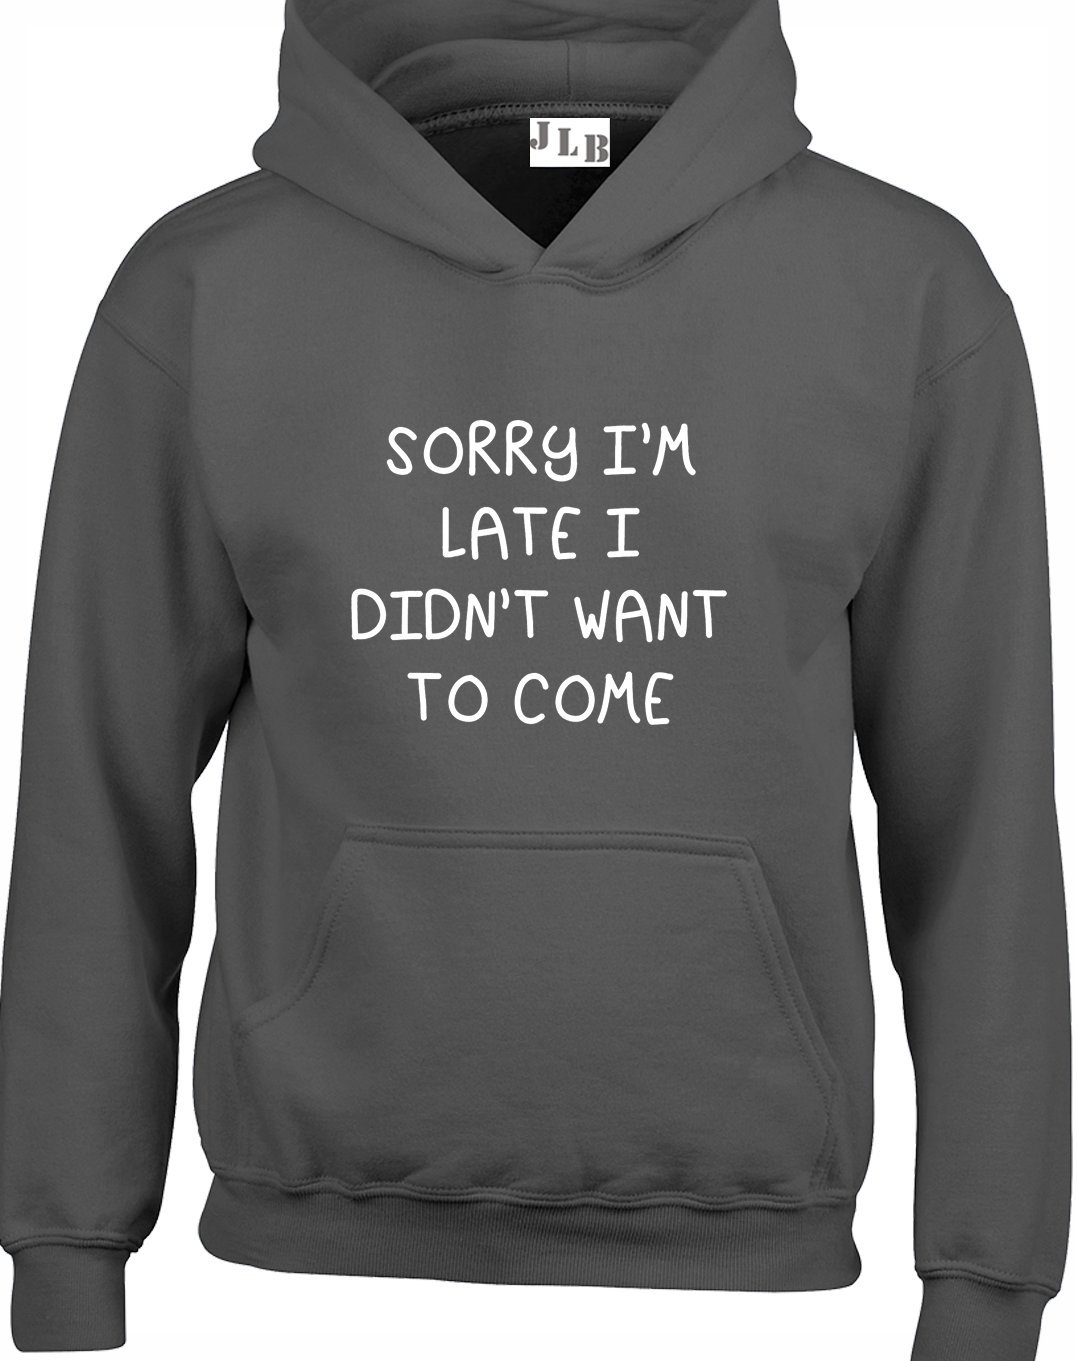 Womens I Solemnly Swear That I Am Up to No Good Funny Hoodies